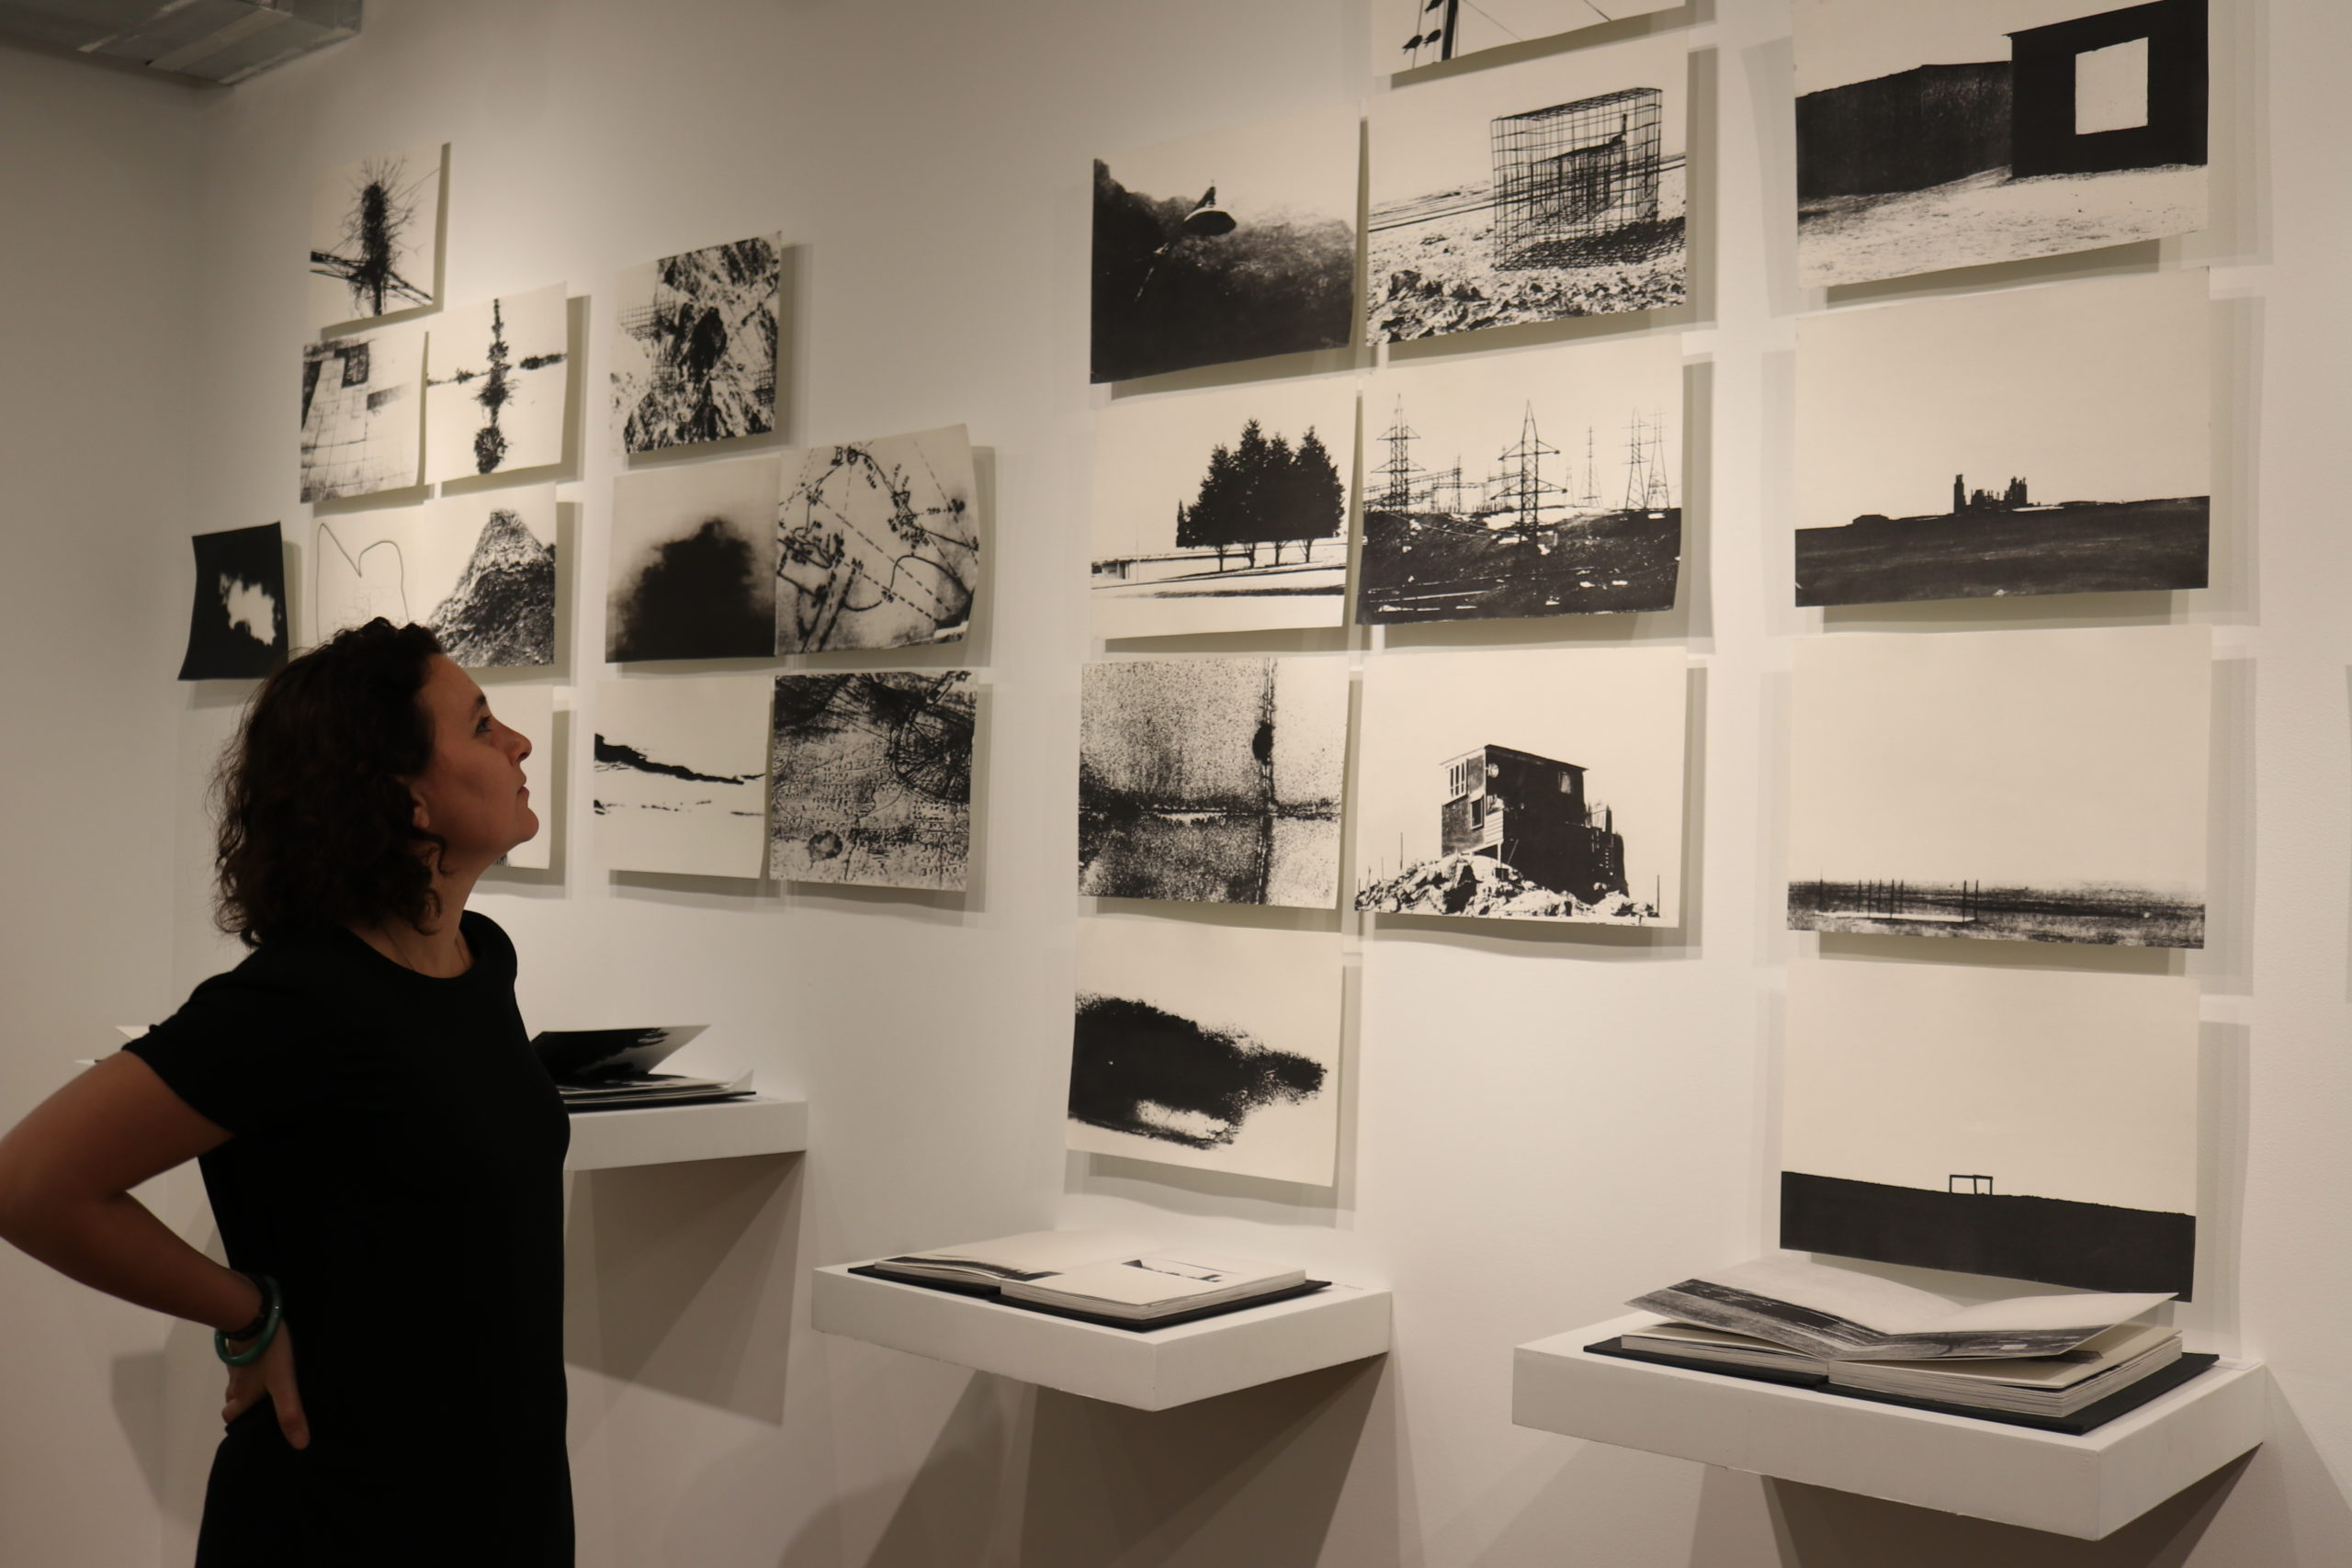 woman looks at a grid on black and white photos